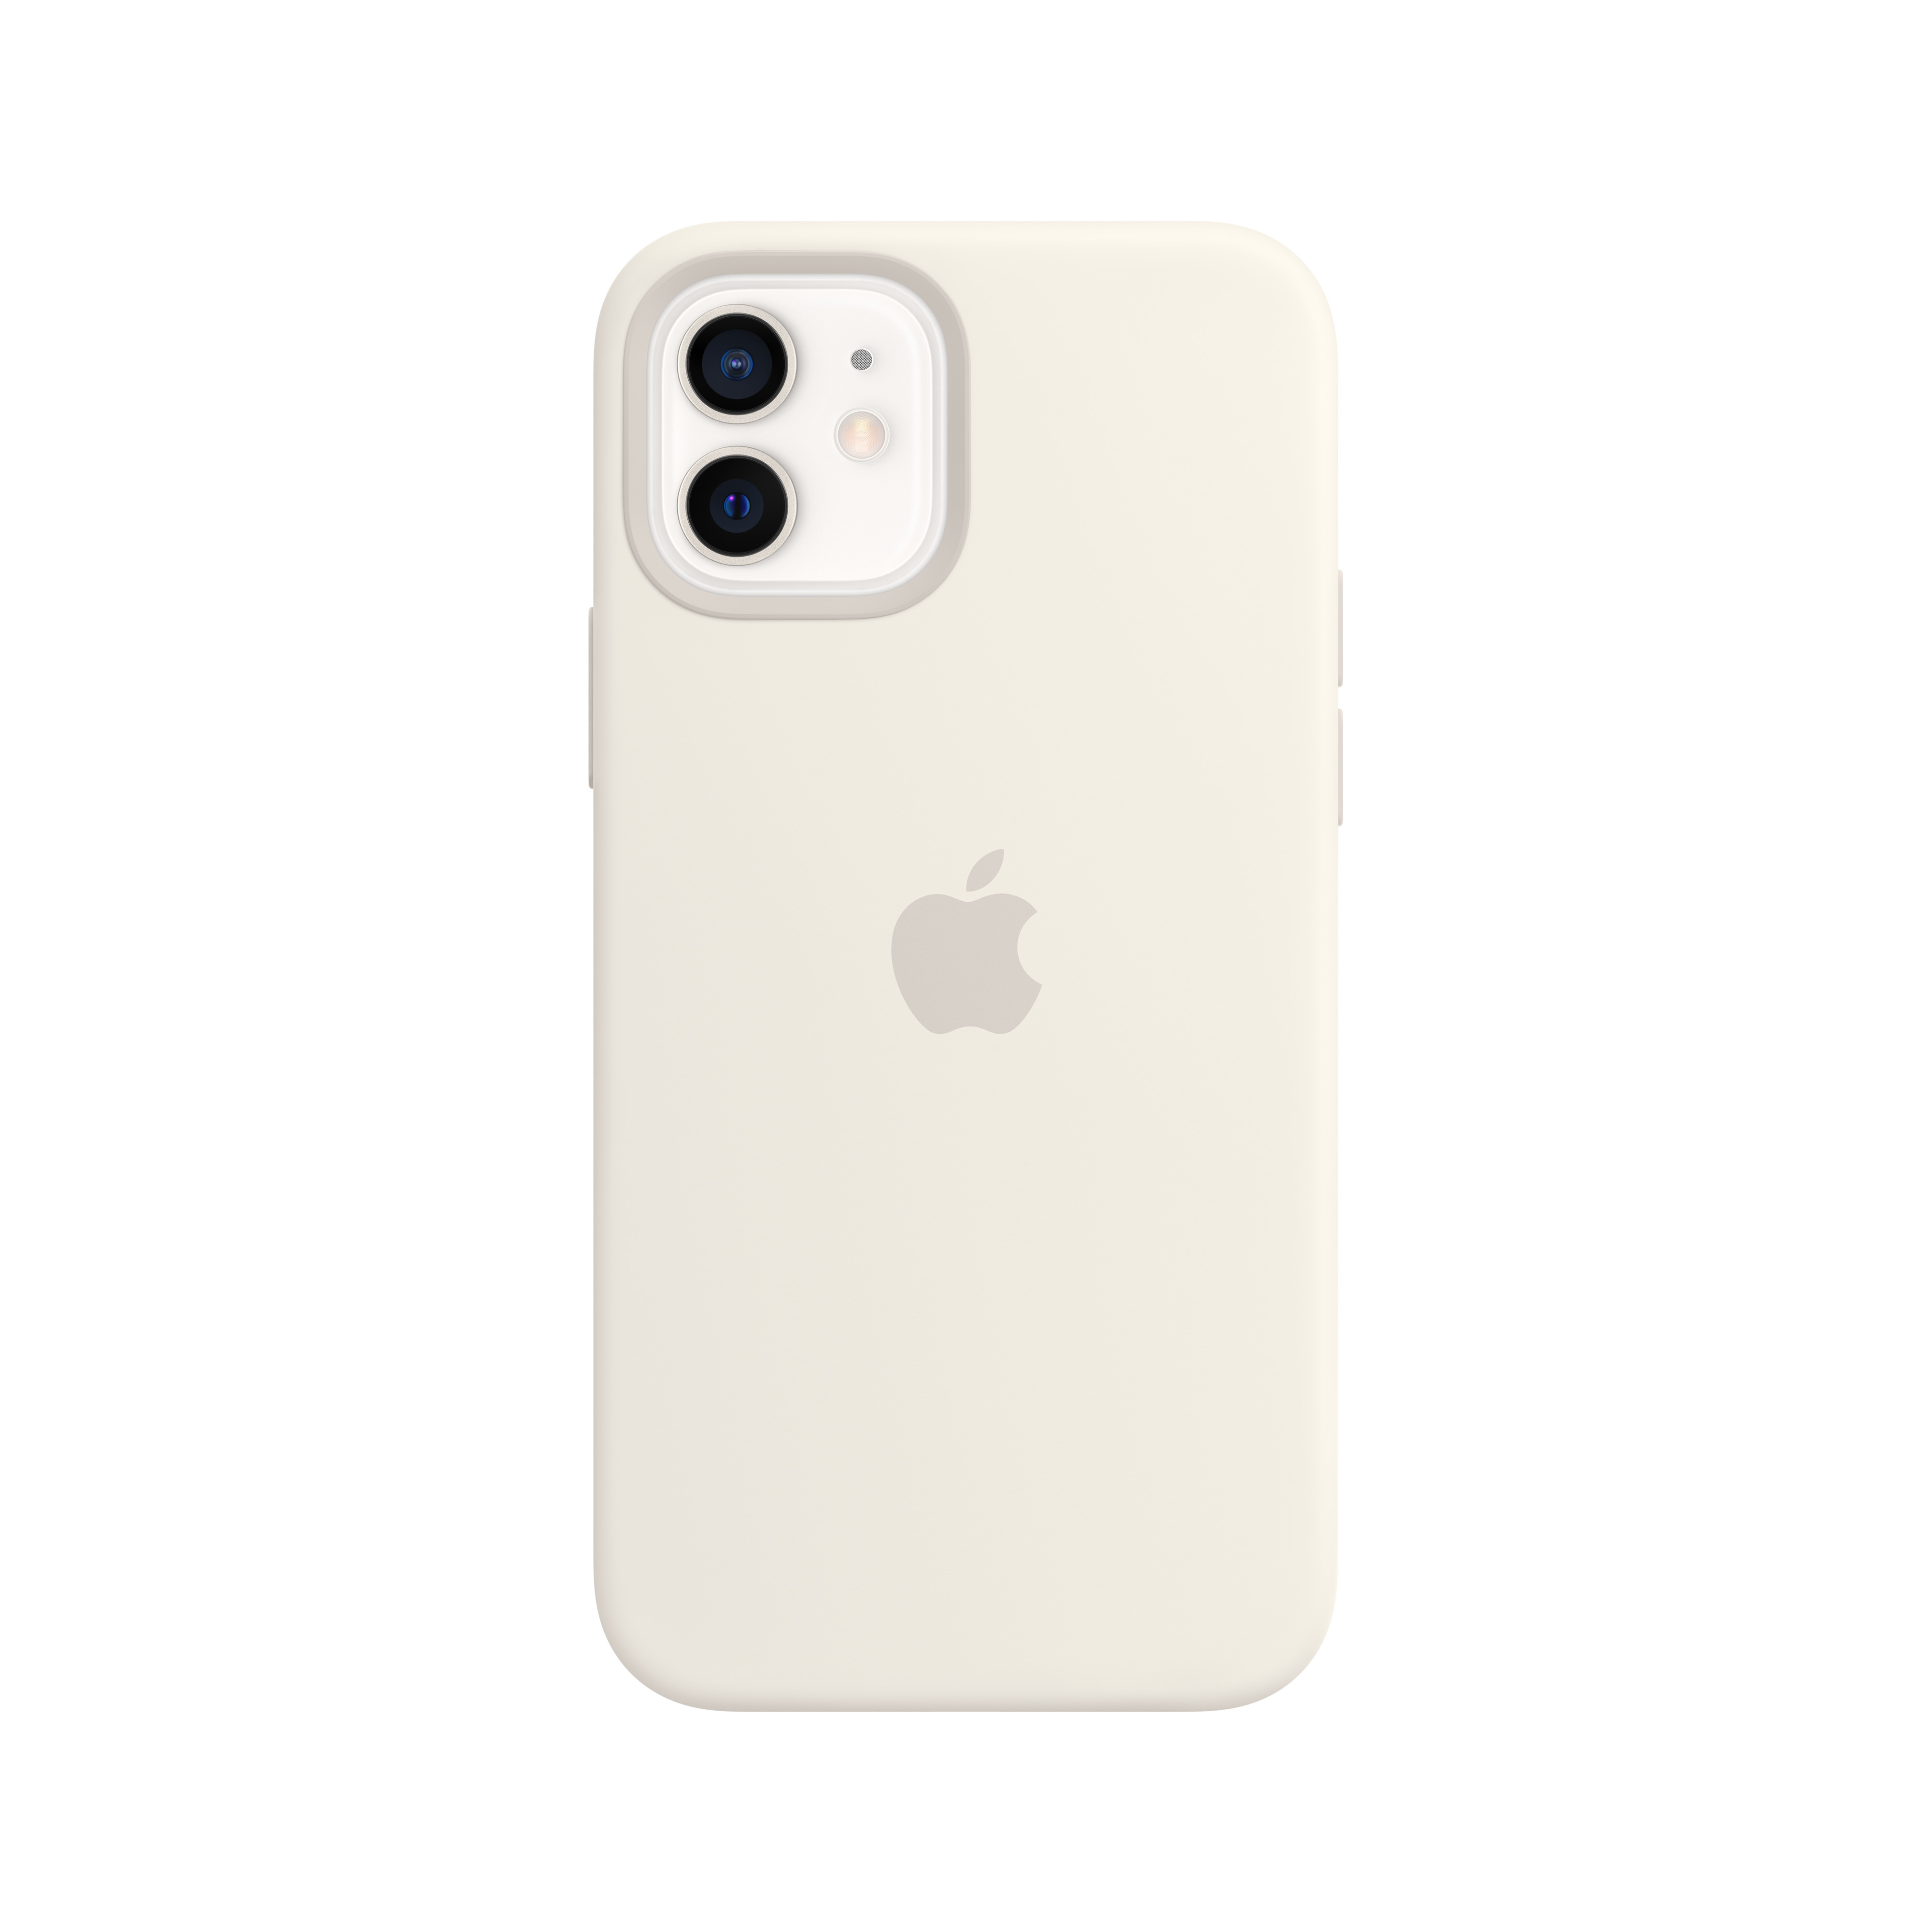 Apple - iPhone 12 | 12 Pro Silicone Case with MagSafe - White Mhl53zm/a